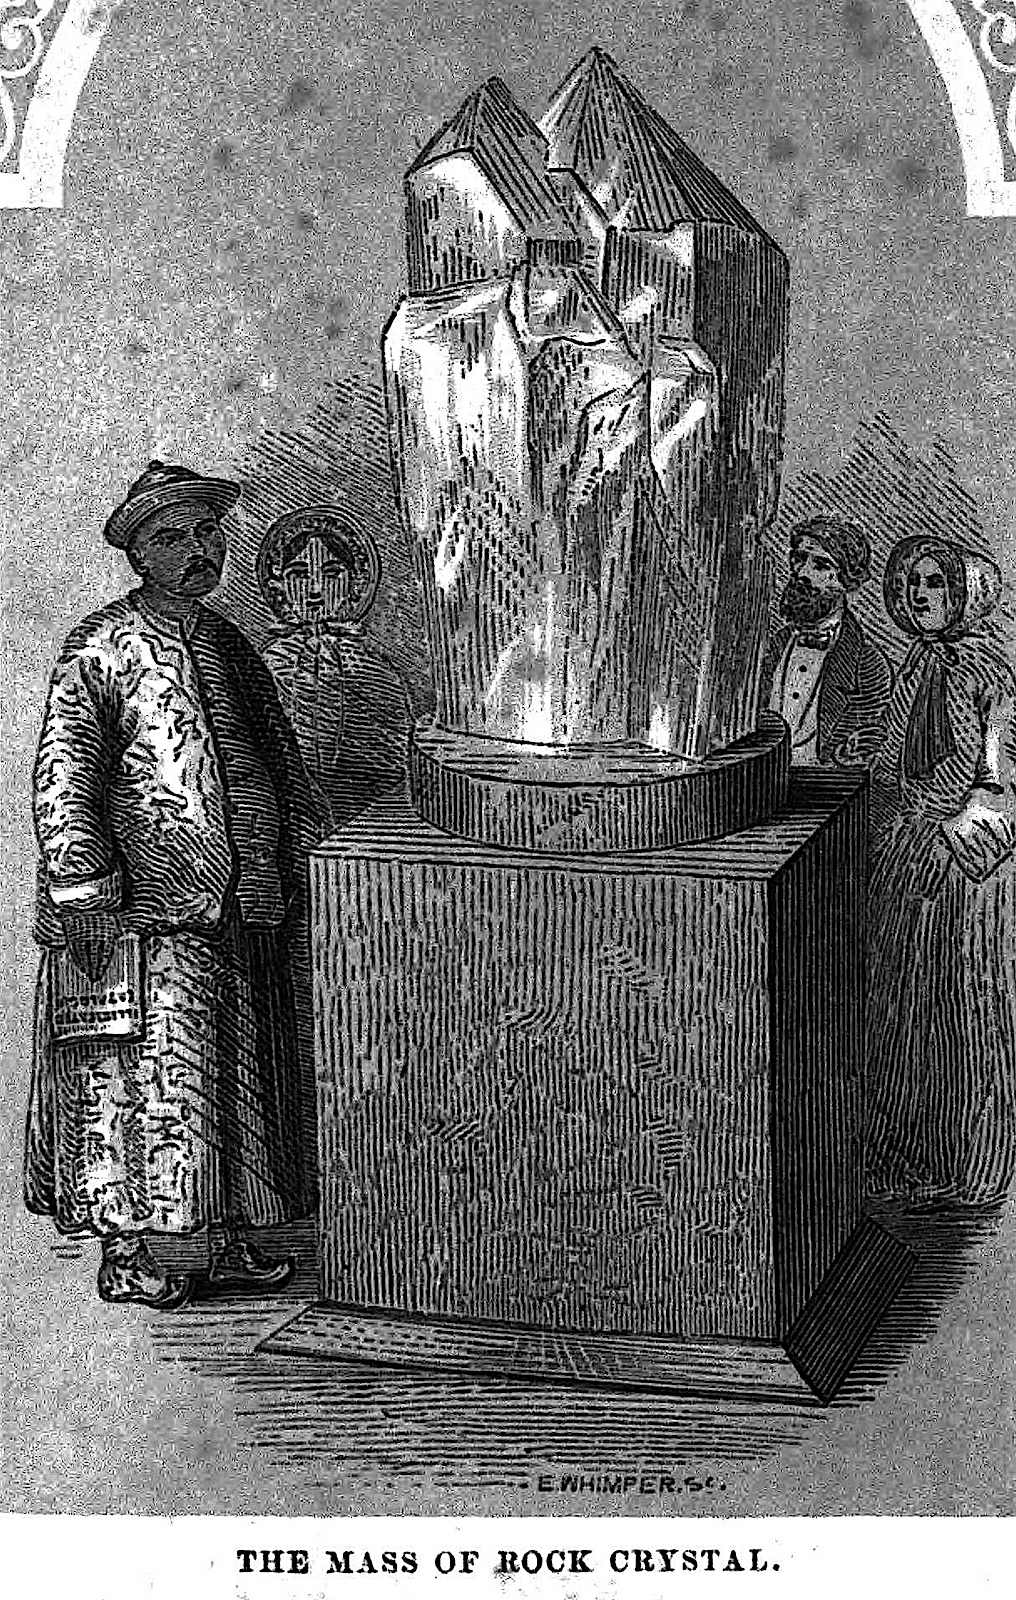 The Mass of Rock Crystal at the 1851 Great Exhibition London